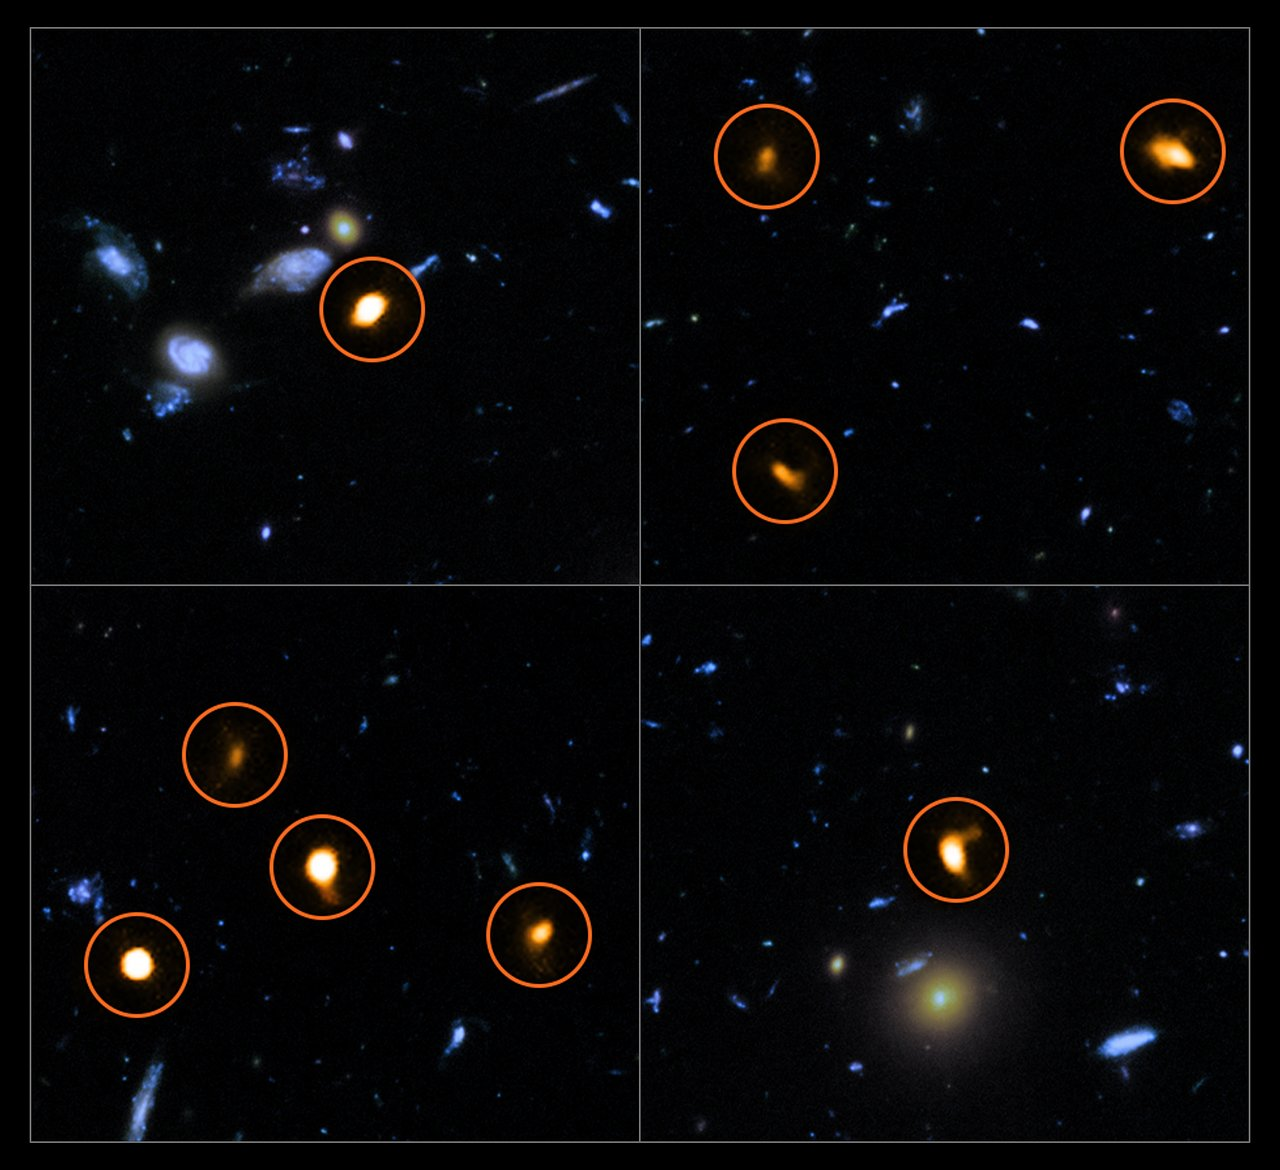 These cutout images are from a combination of a background picture taken by the NASA/ESA Hubble Space Telescope (blue/green) with a new very deep ALMA view of the field (orange, marked with circles). All the objects that ALMA sees appear to be massive star-forming galaxies. – Image Credit:   ALMA (ESO/NAOJ/NRAO)/NASA/ESA/J. Dunlop et al.and S. Beckwith (   STScI   ) and the HUDF Team.